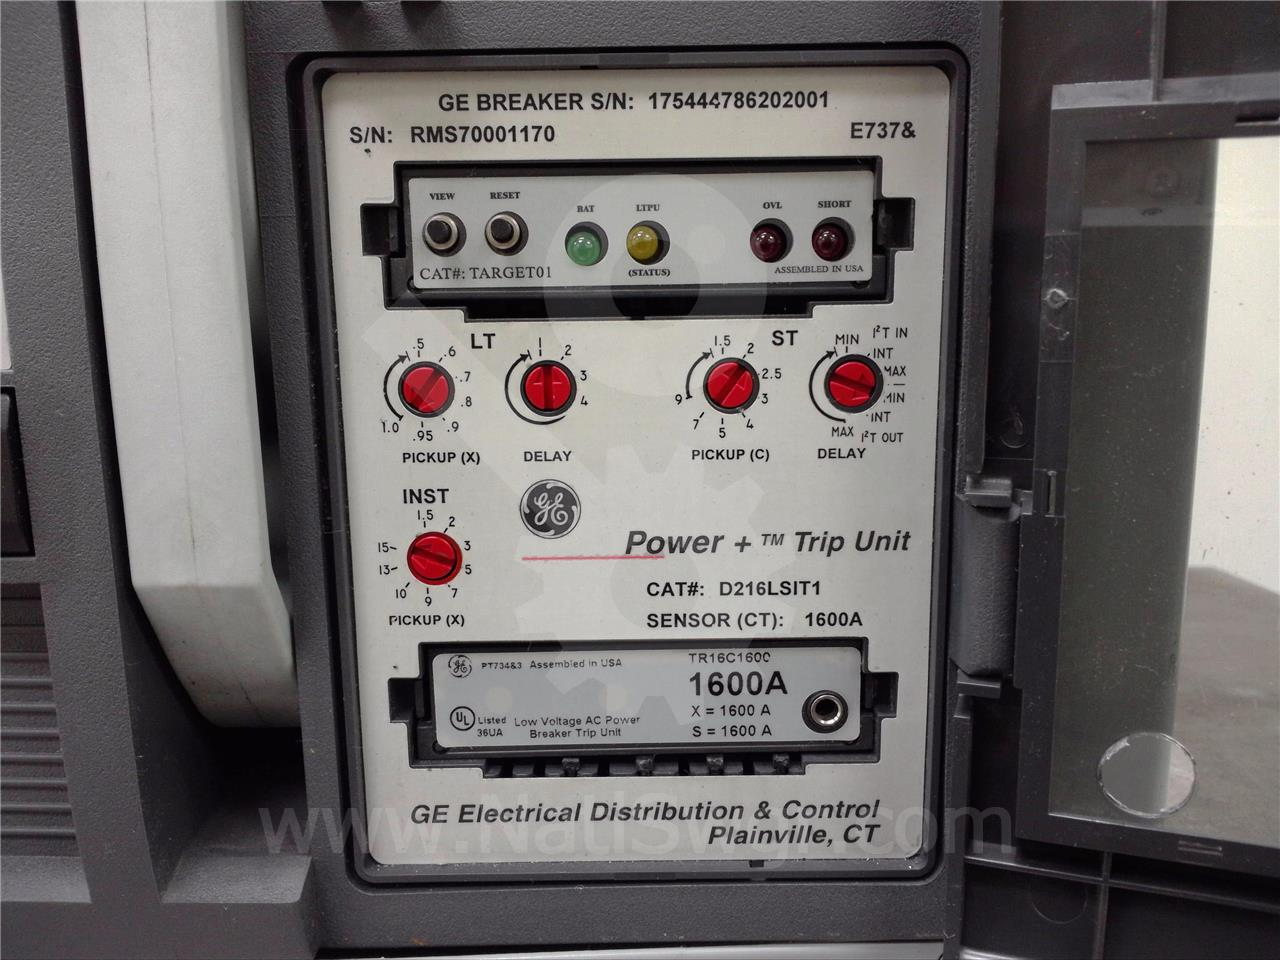 General Electric GE POWER PLUS SOLID STATE PROGRAMMER LSI